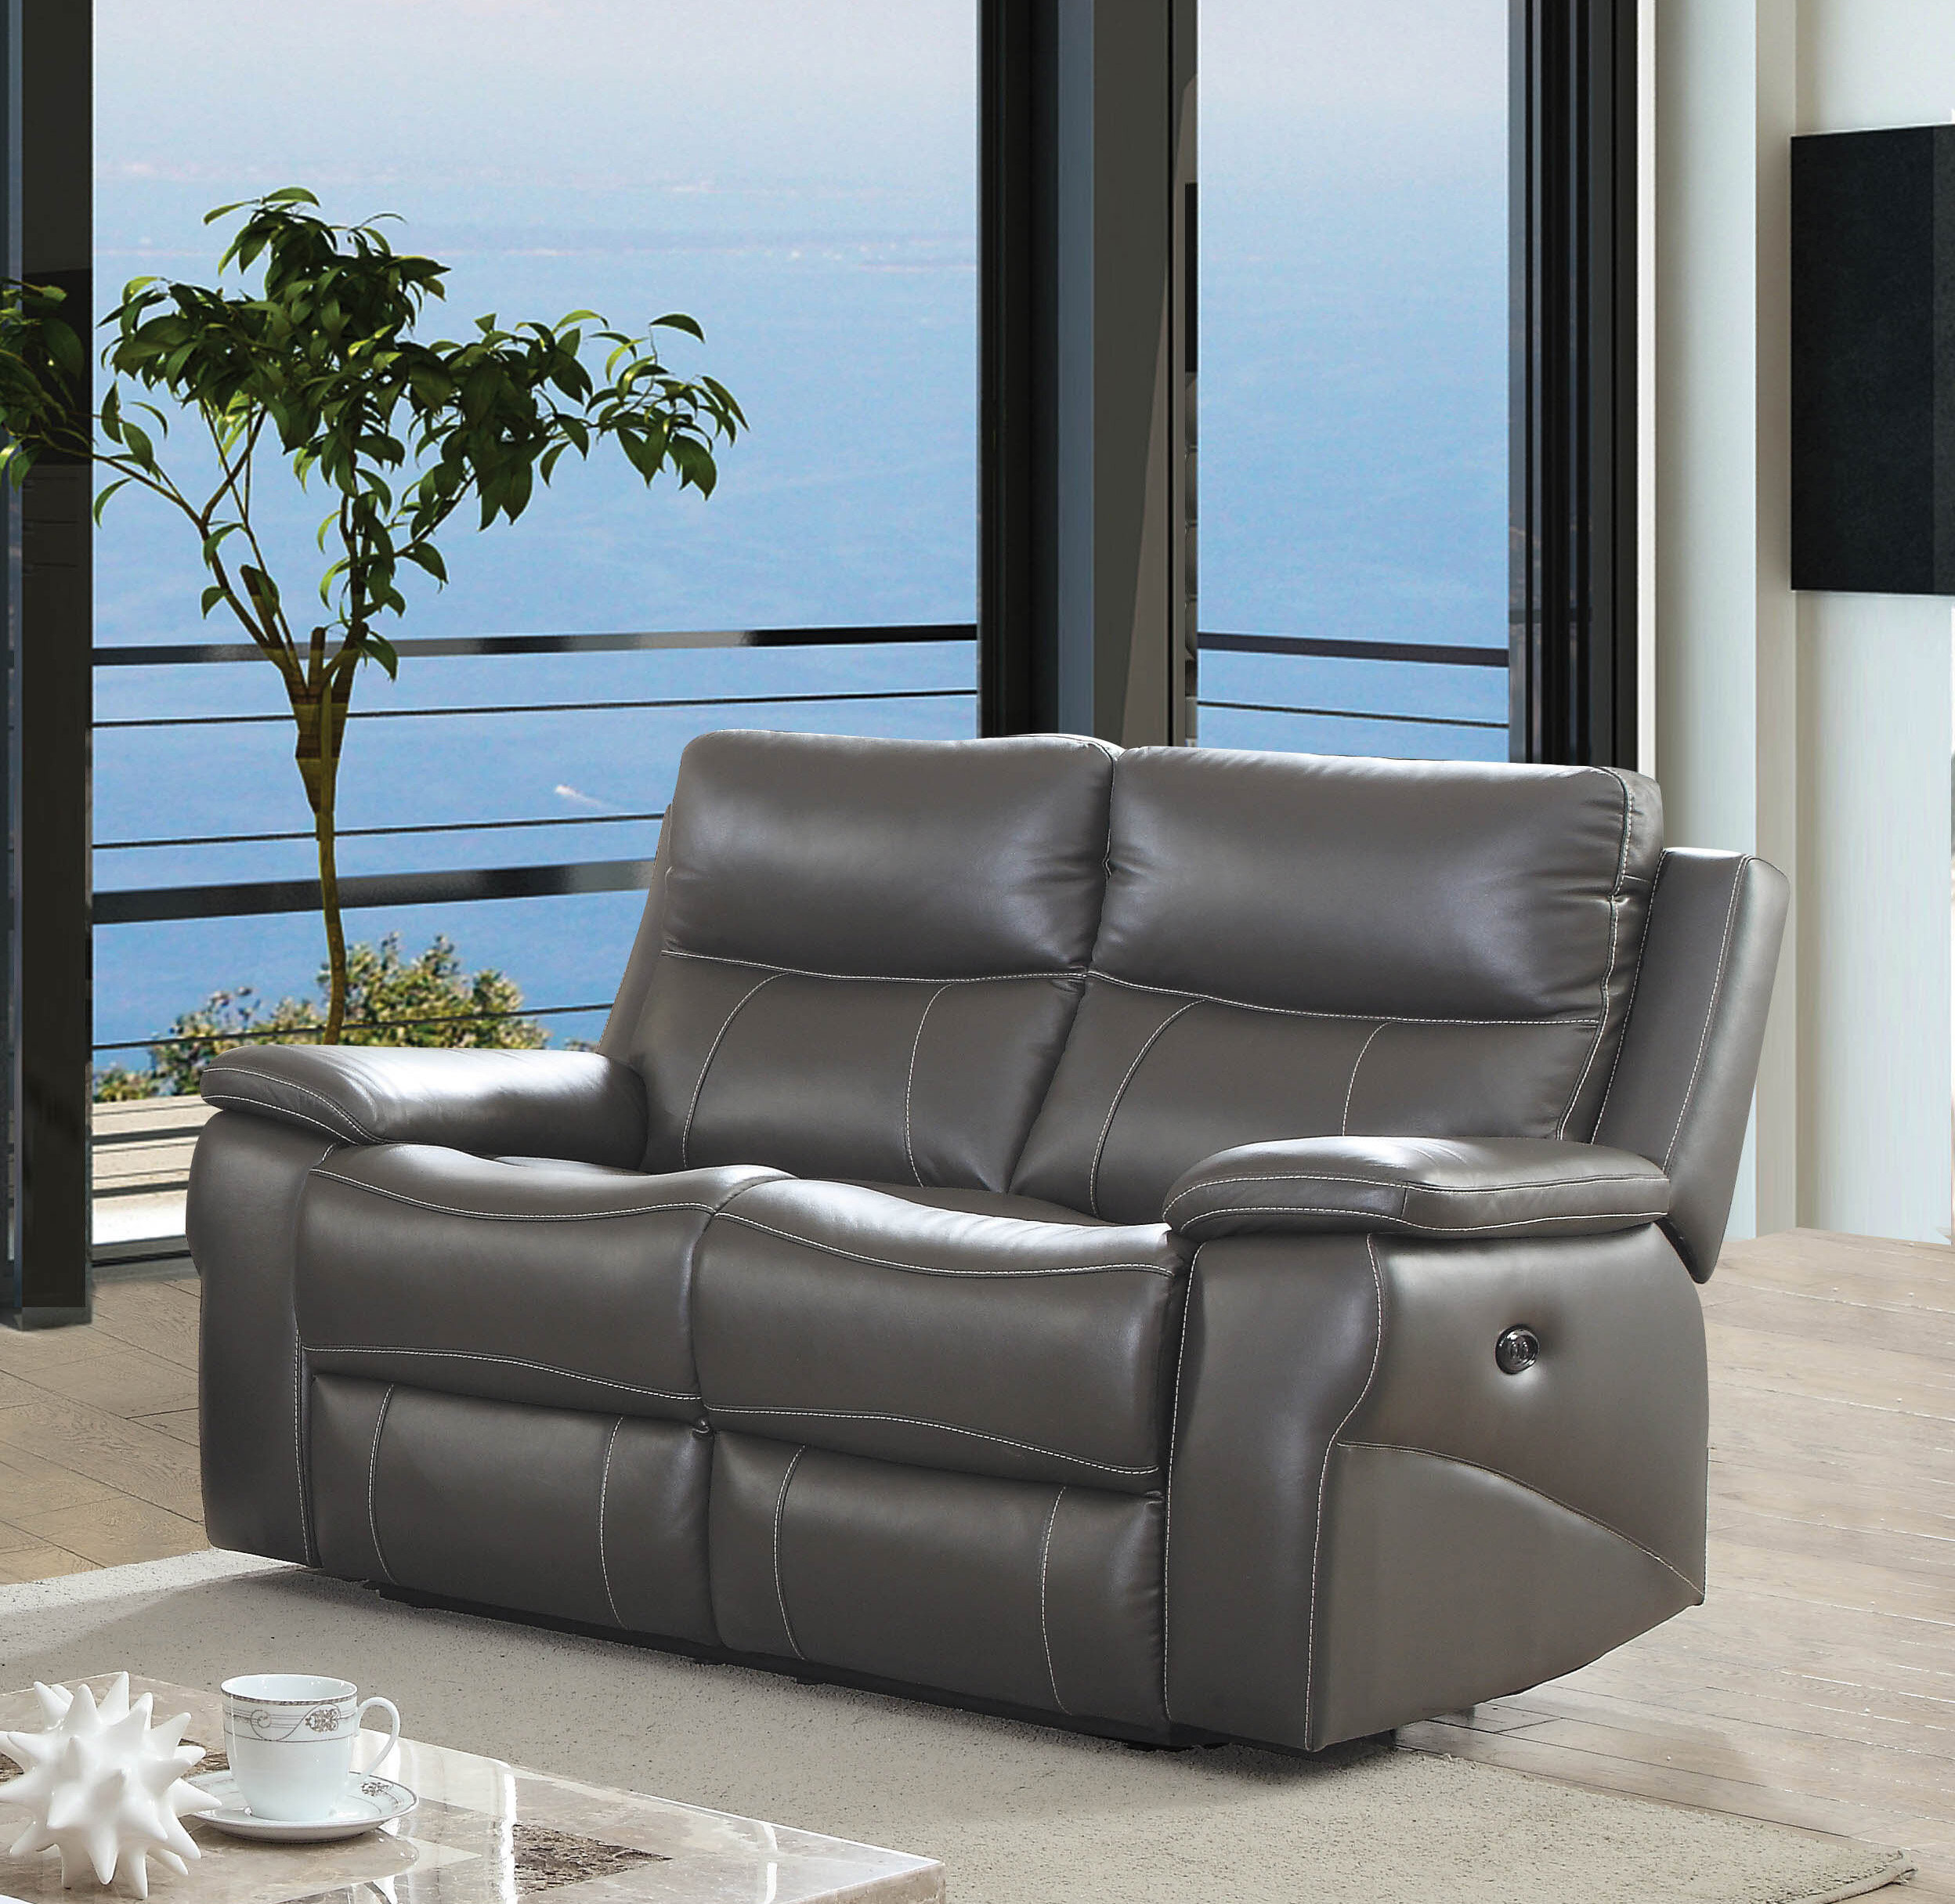 Wondrous Faulks Leather Reclining Loveseat Squirreltailoven Fun Painted Chair Ideas Images Squirreltailovenorg